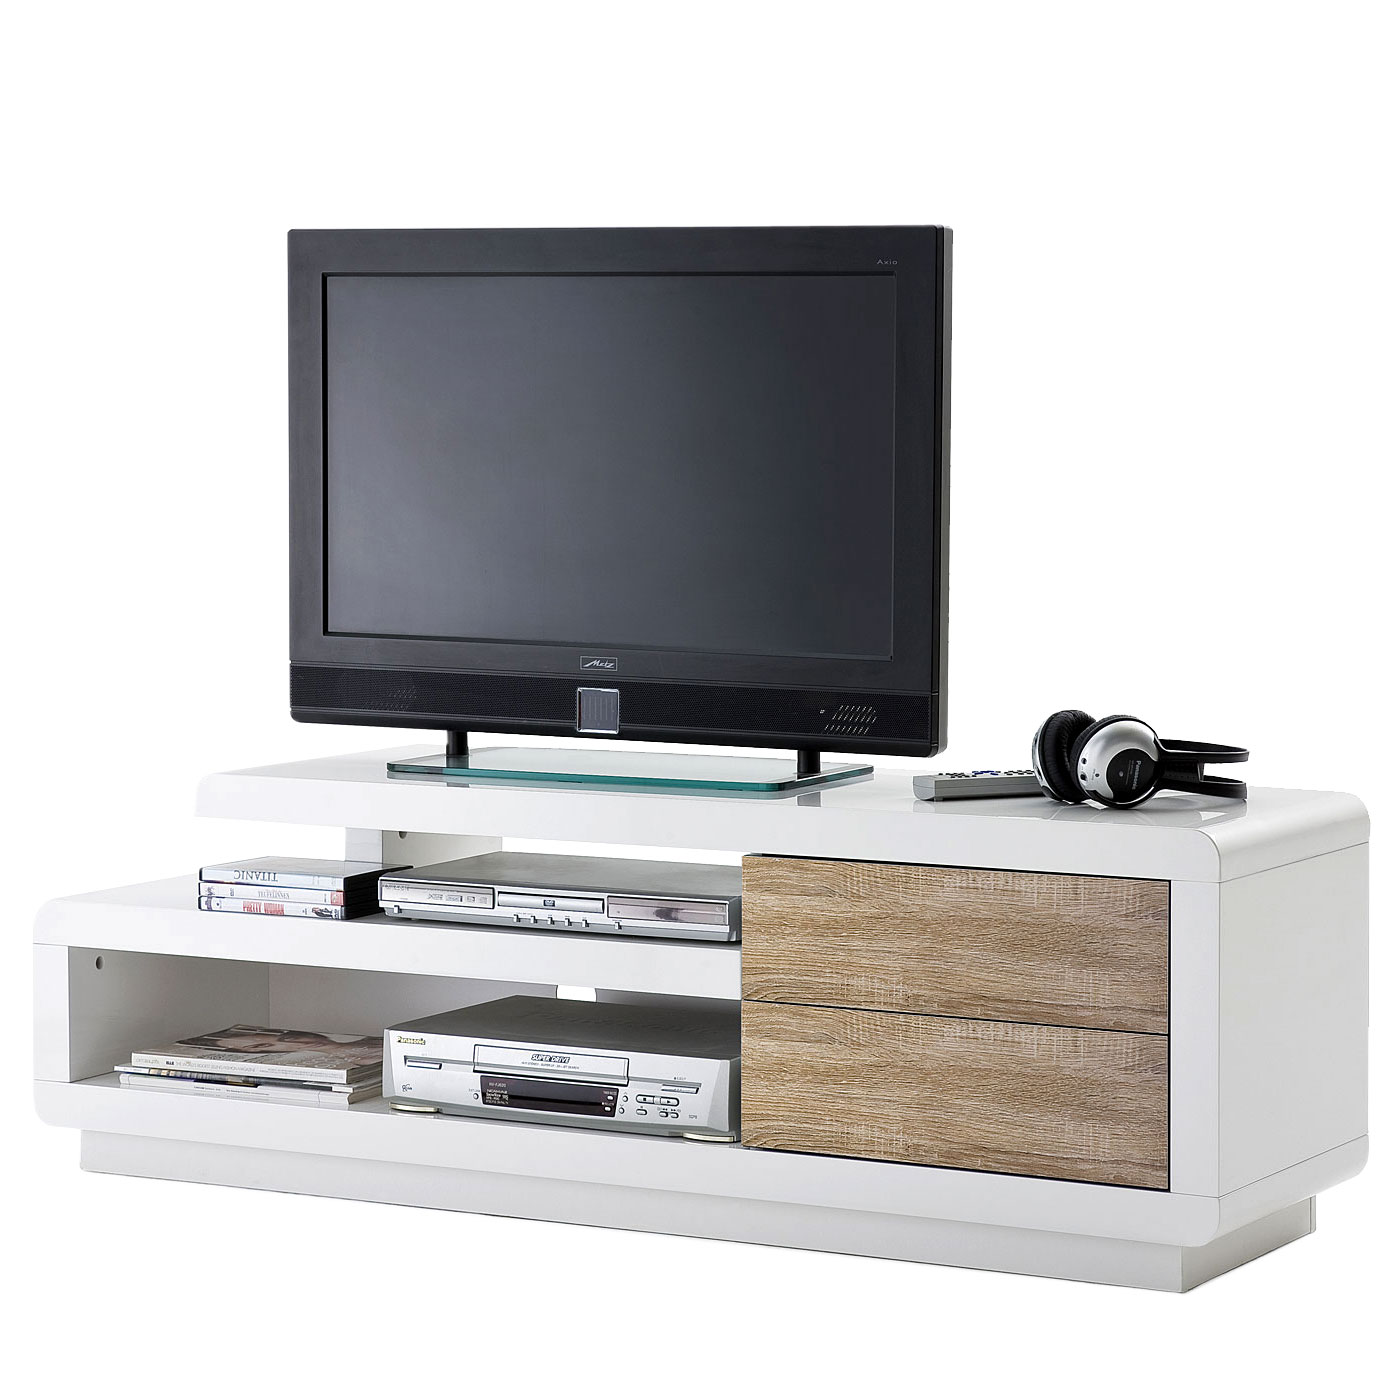 mca tv rack cosima lowboard fernsehtisch mit schubladen hochglanz wei 45x142x40cm eiche. Black Bedroom Furniture Sets. Home Design Ideas